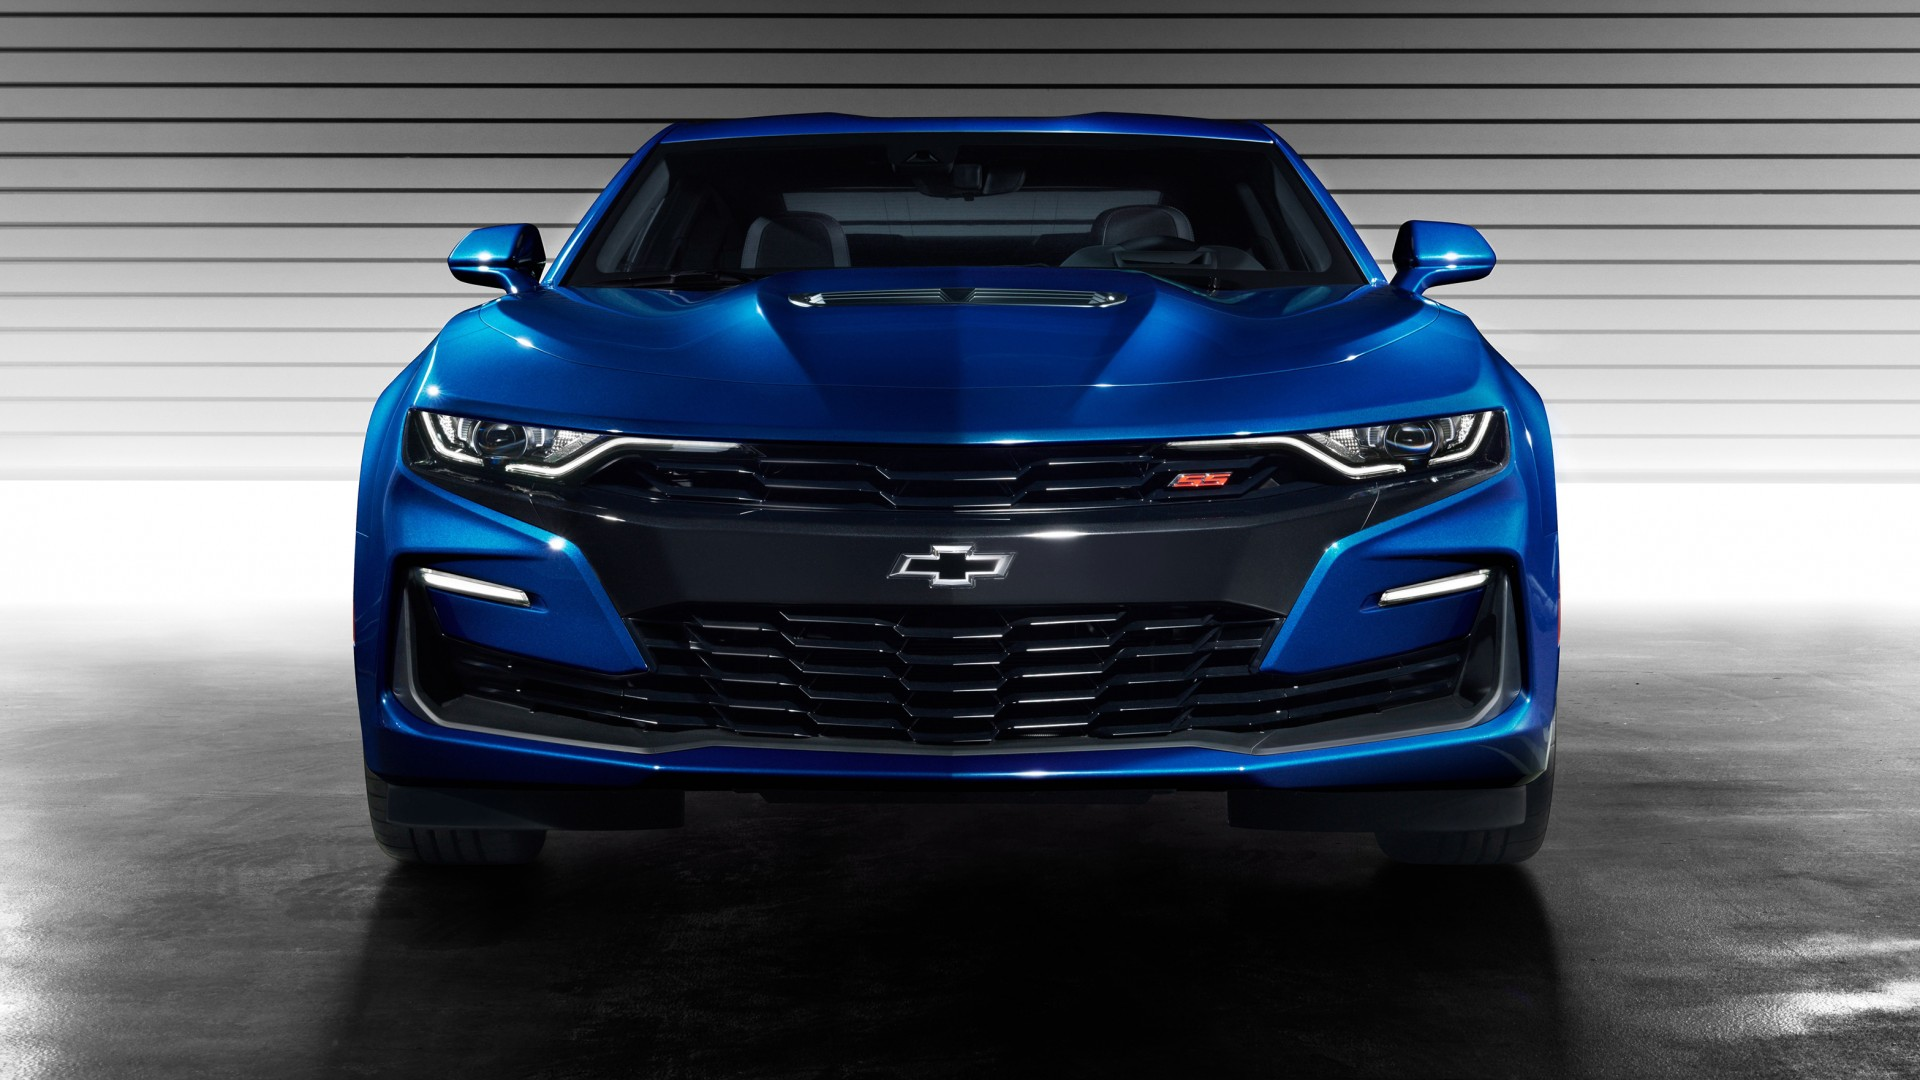 2019 Malibu >> 2019 Chevrolet Camaro SS Wallpaper | HD Car Wallpapers | ID #10155